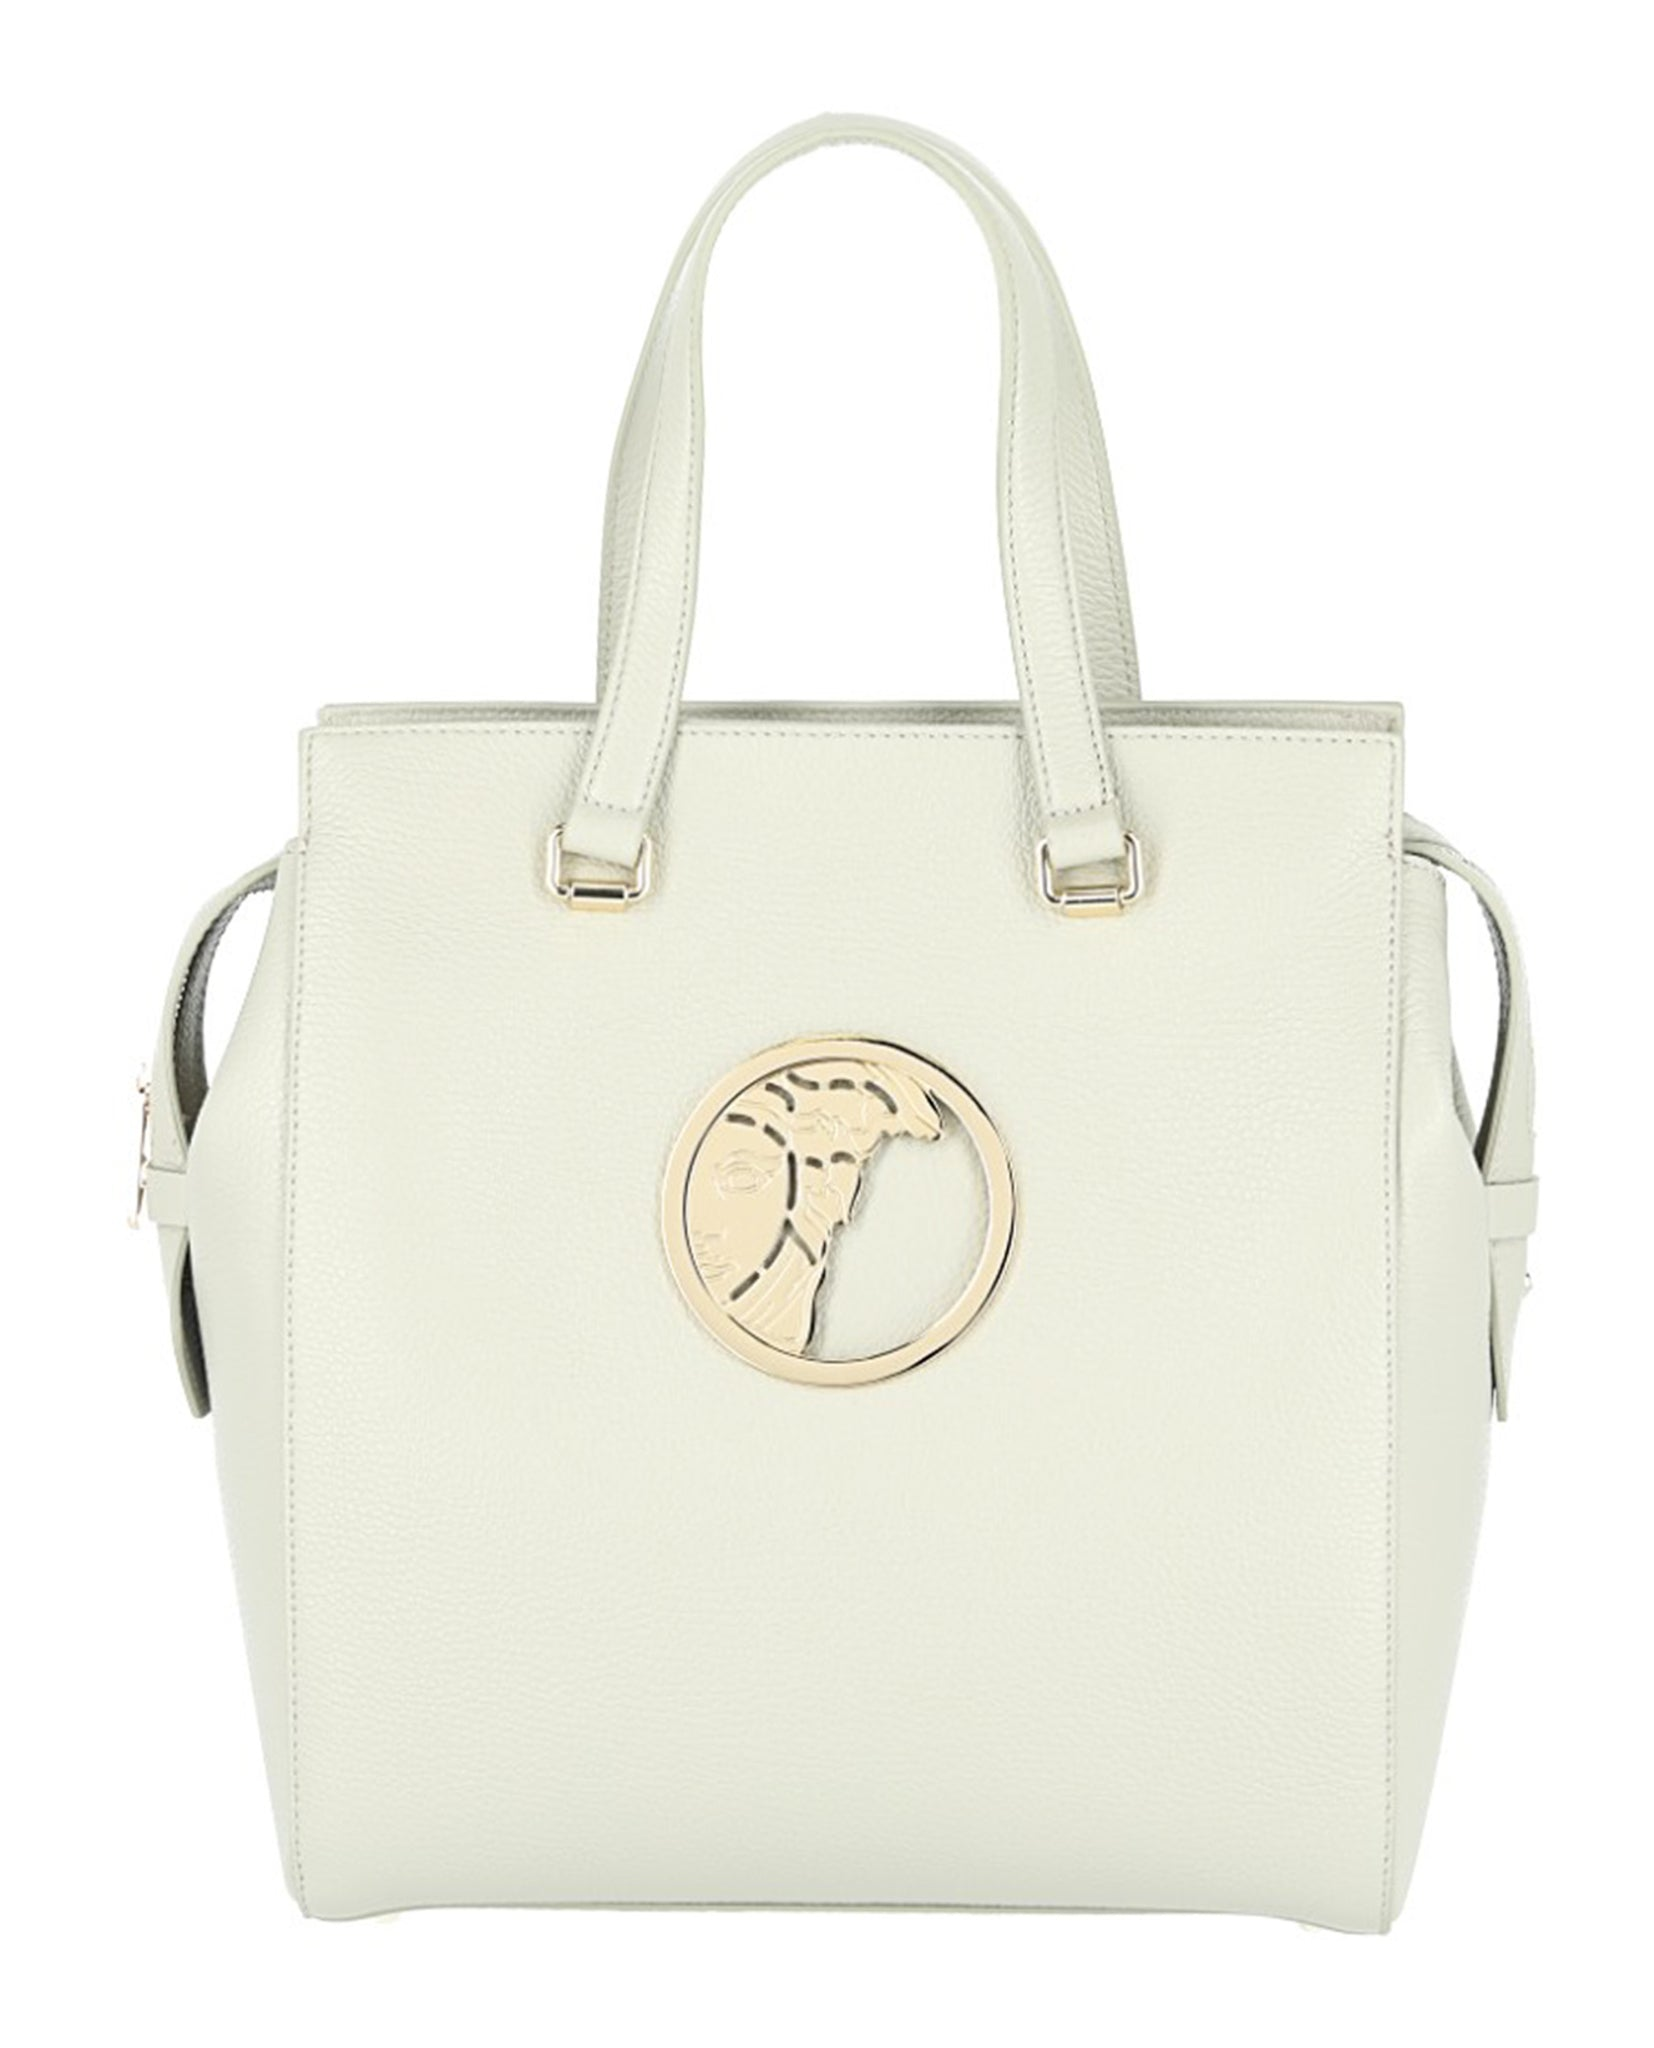 bfcbc9741373 Versace Collection Womens Tote